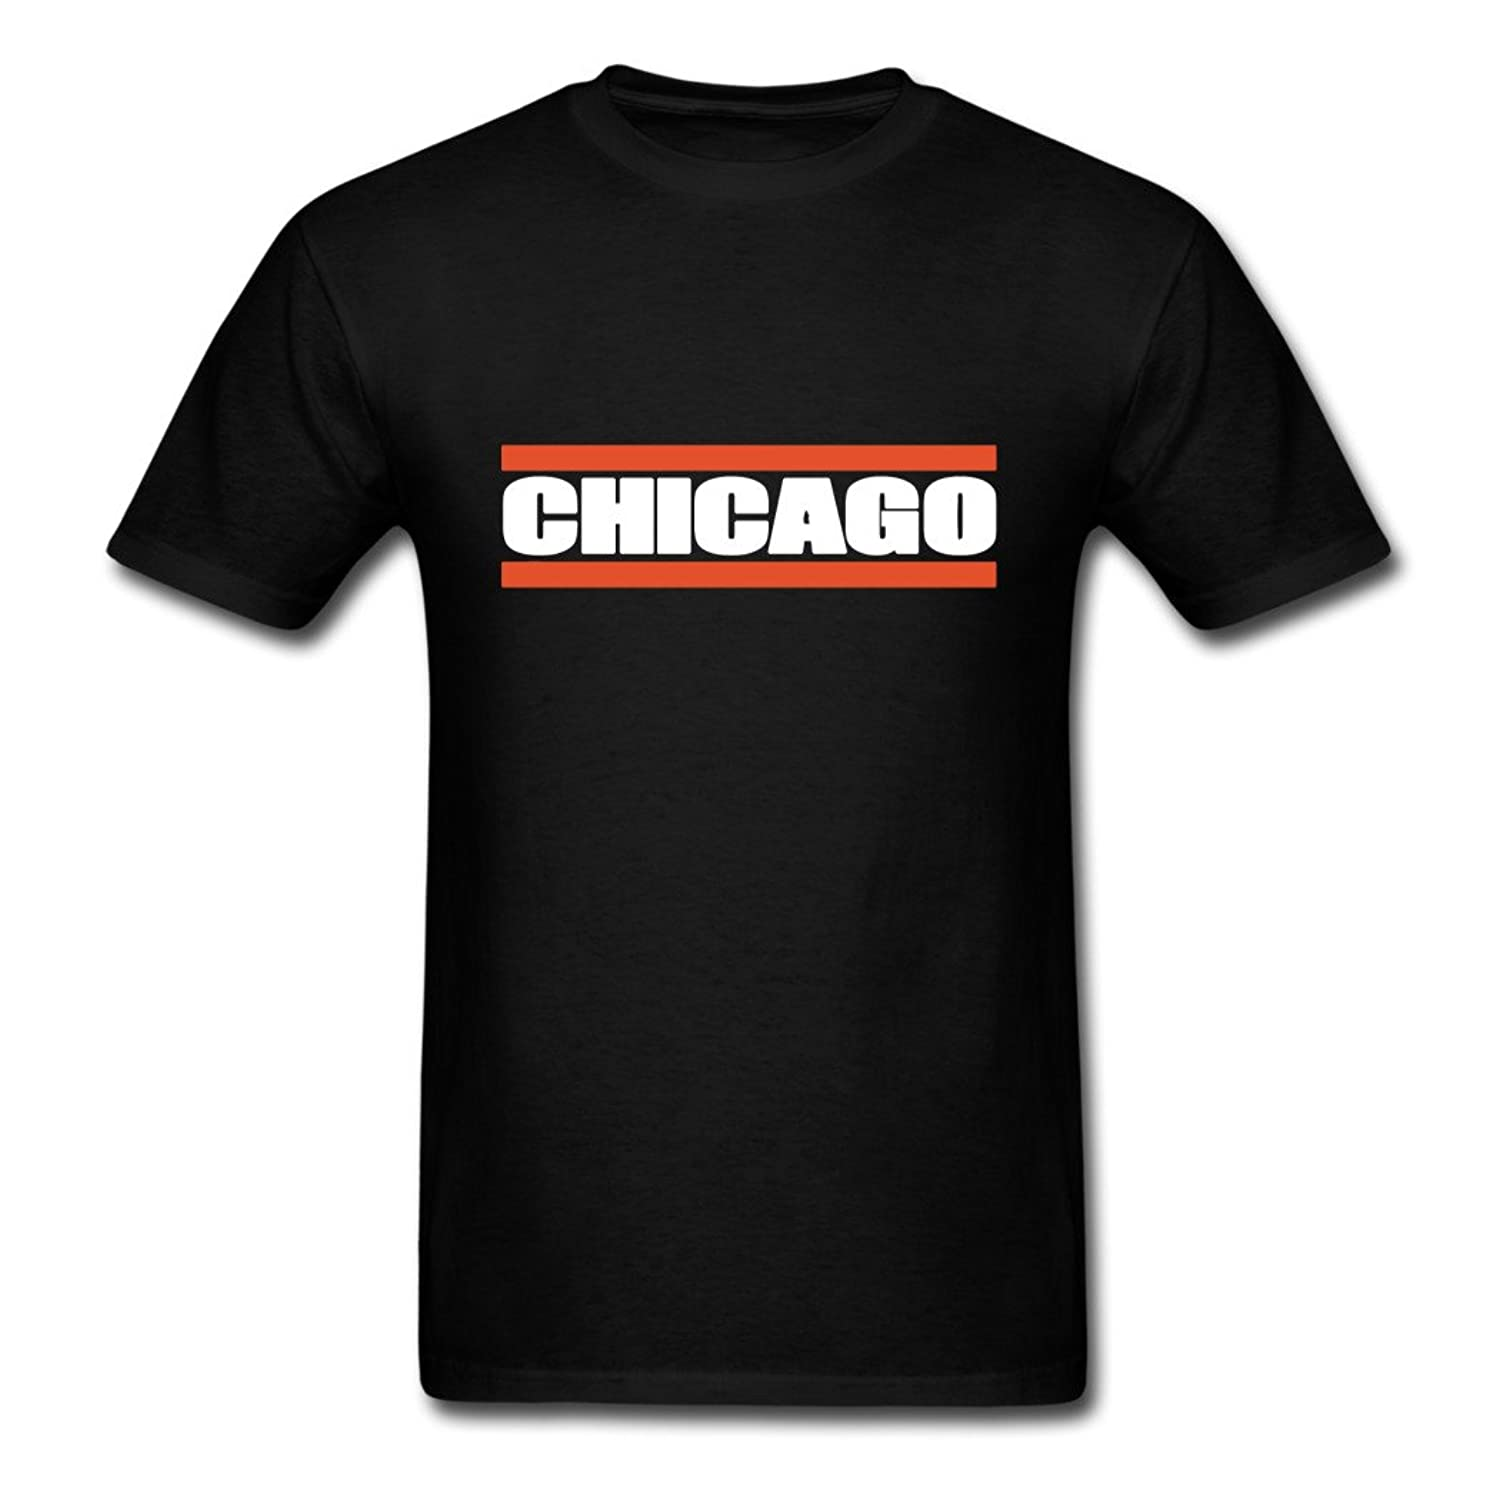 TpIss Classic Chicago Football Sweater Graphic Male Clothing Black